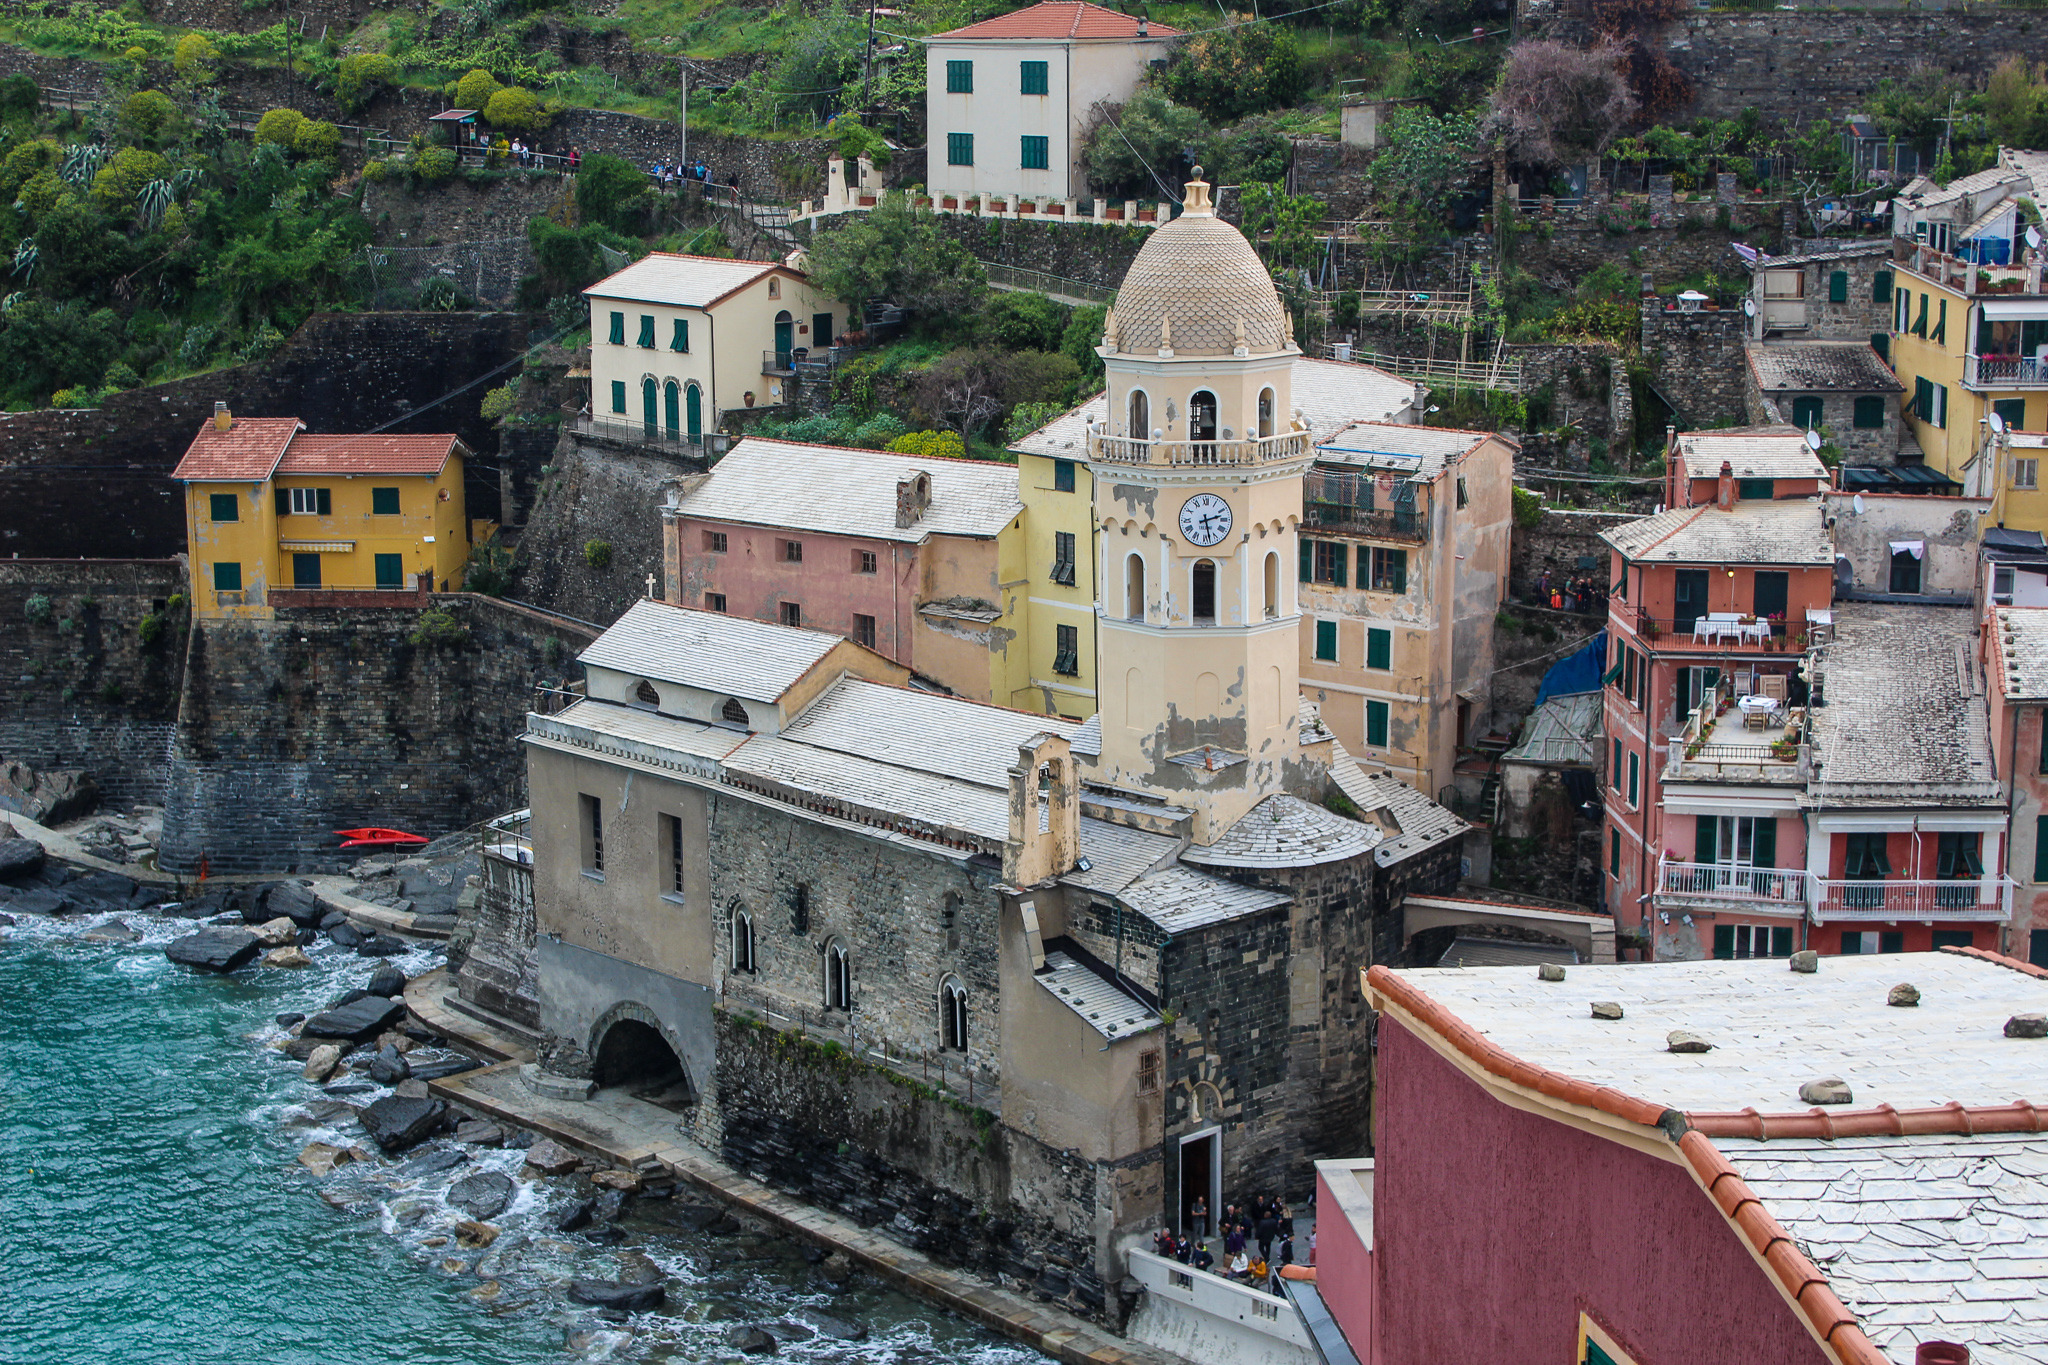 cinque terre is one of the best weekend destinations in europe